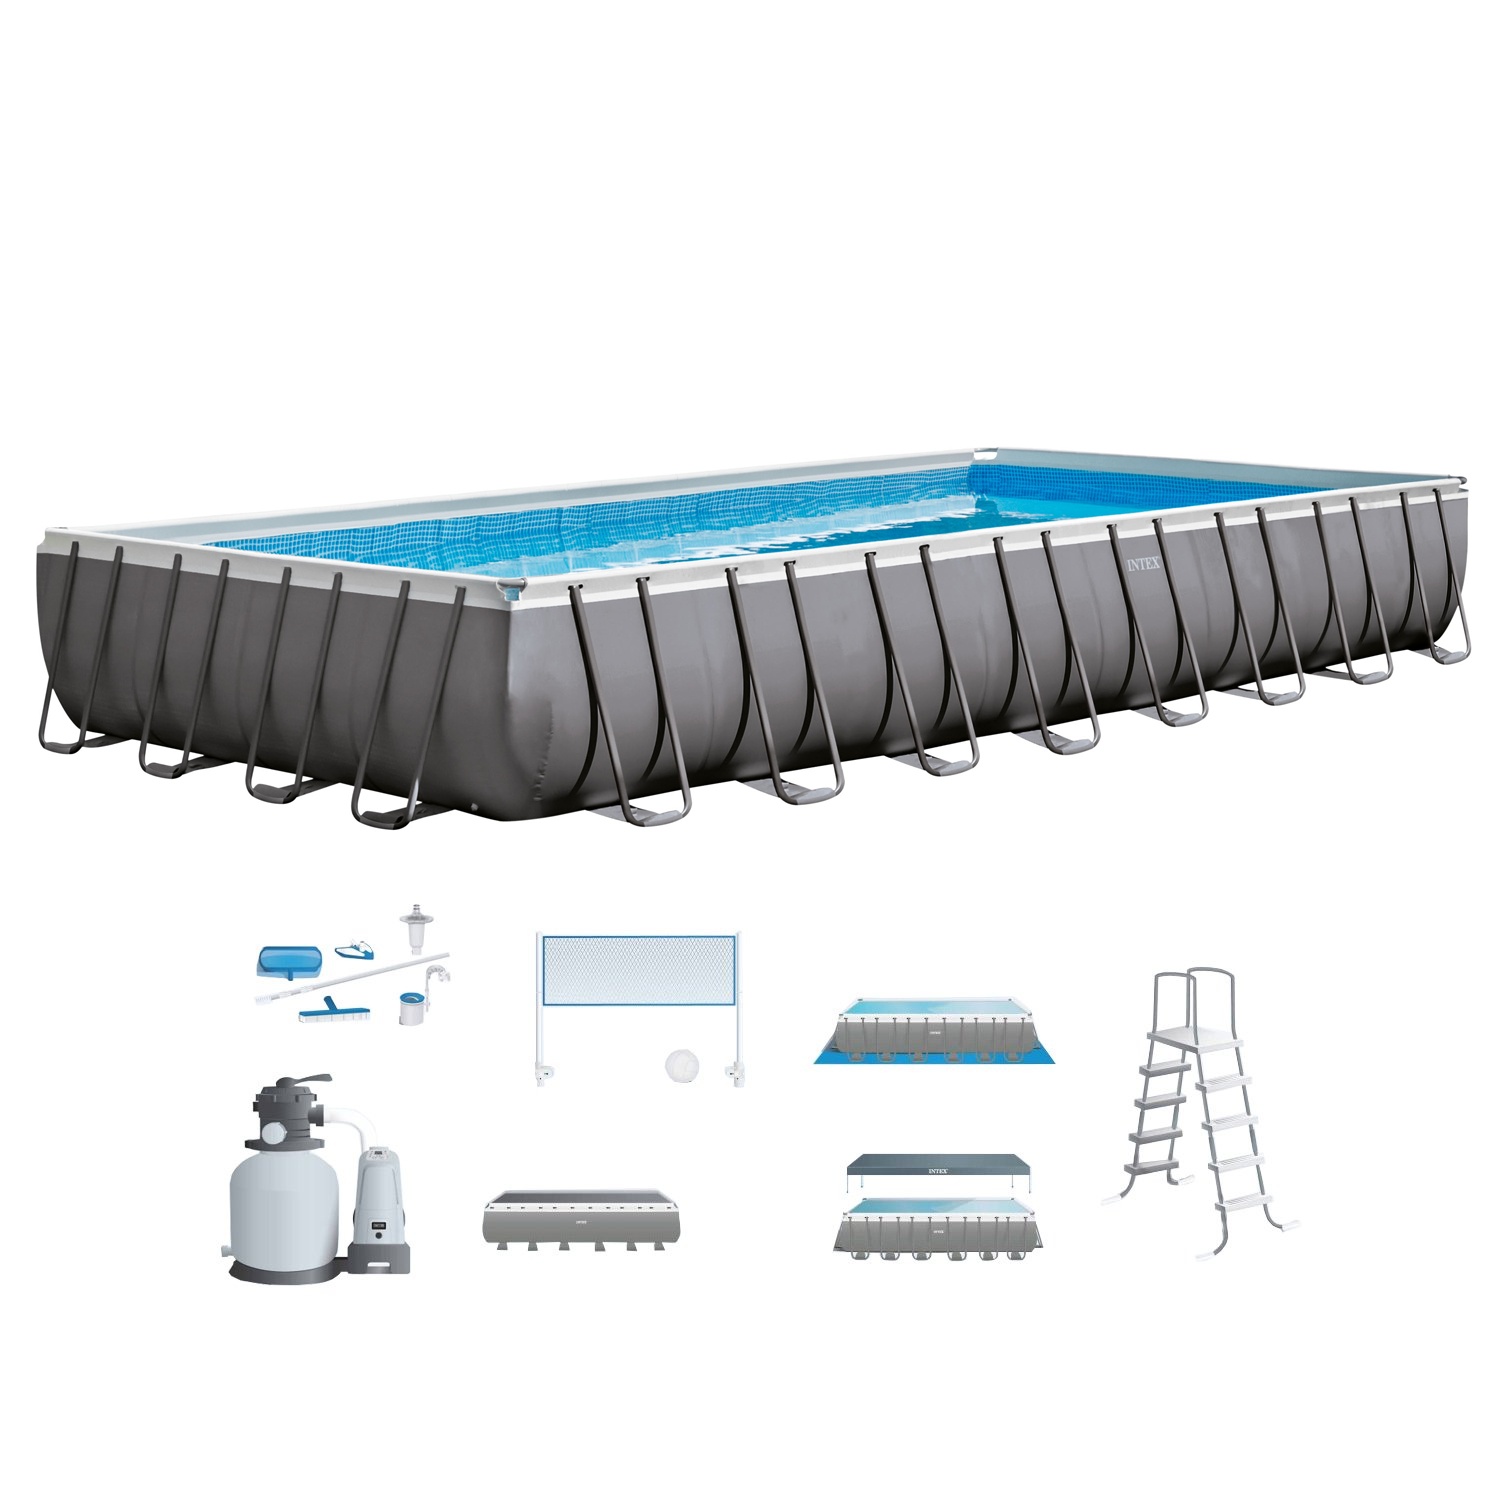 Intex 32' x 16' x 4.3' Ultra Frame Above Ground Swimming Pool Set with Sand Pump by Intex